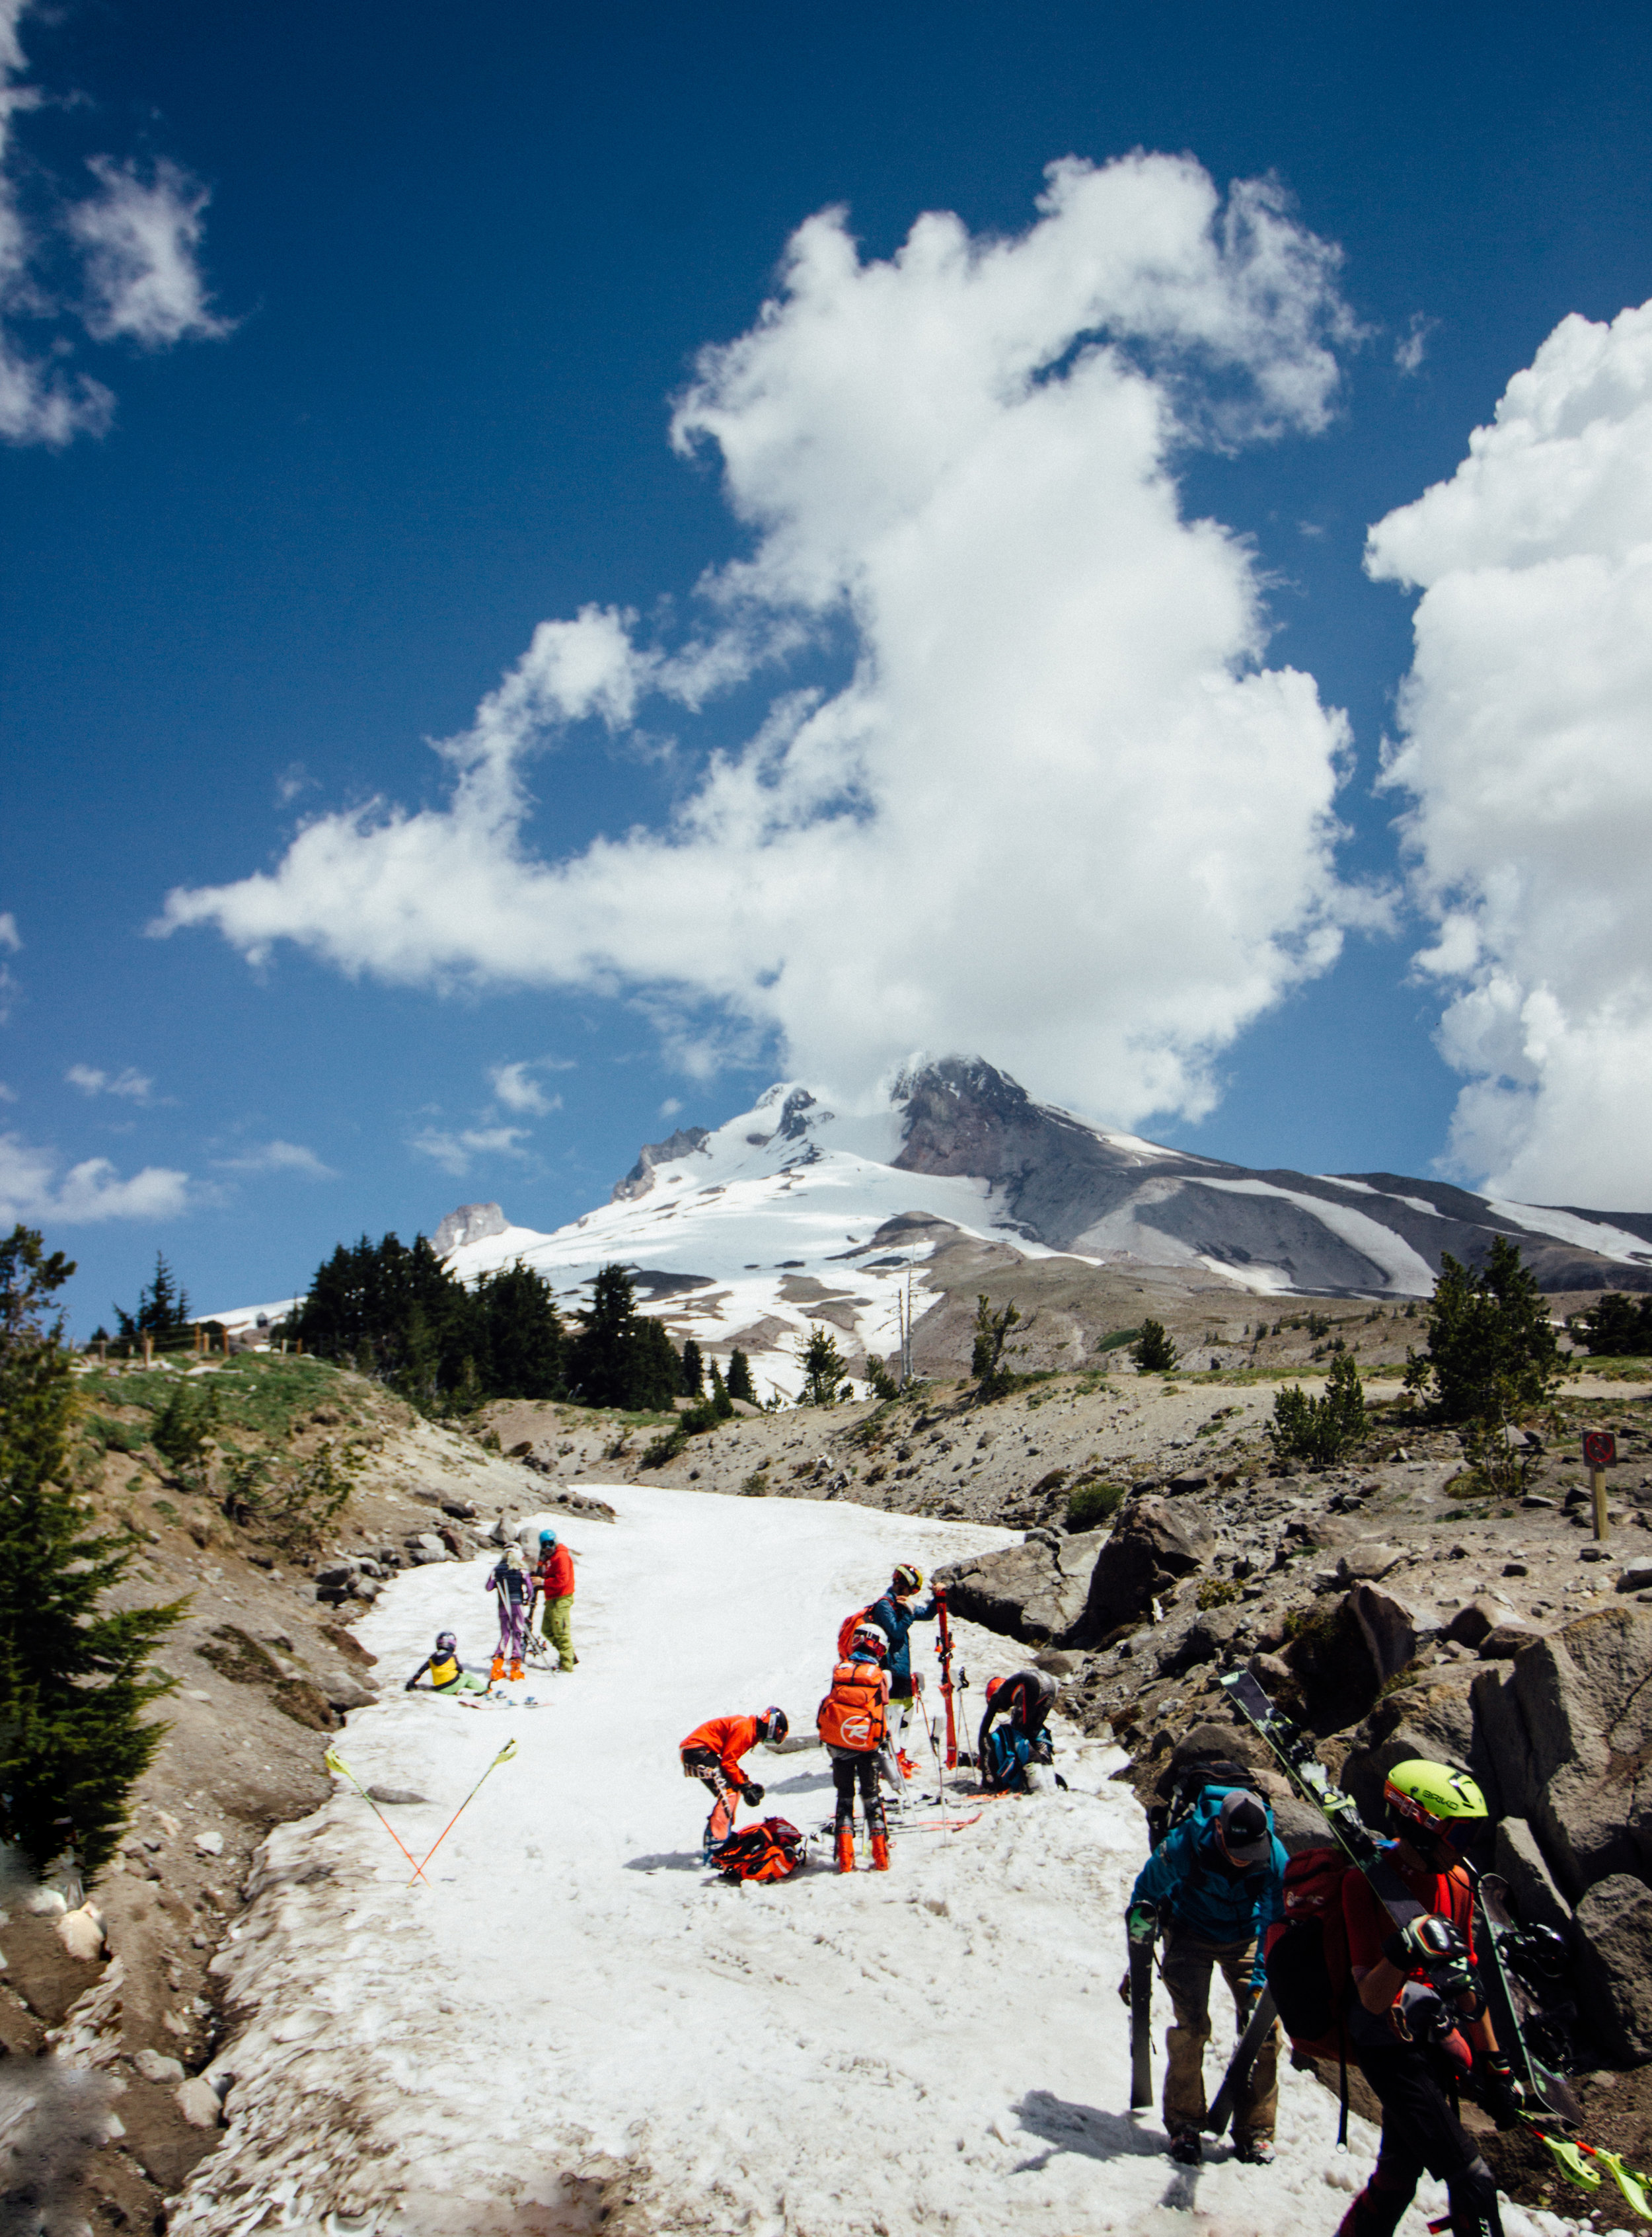 Snow boarders and skiers coming down from Mount Hood